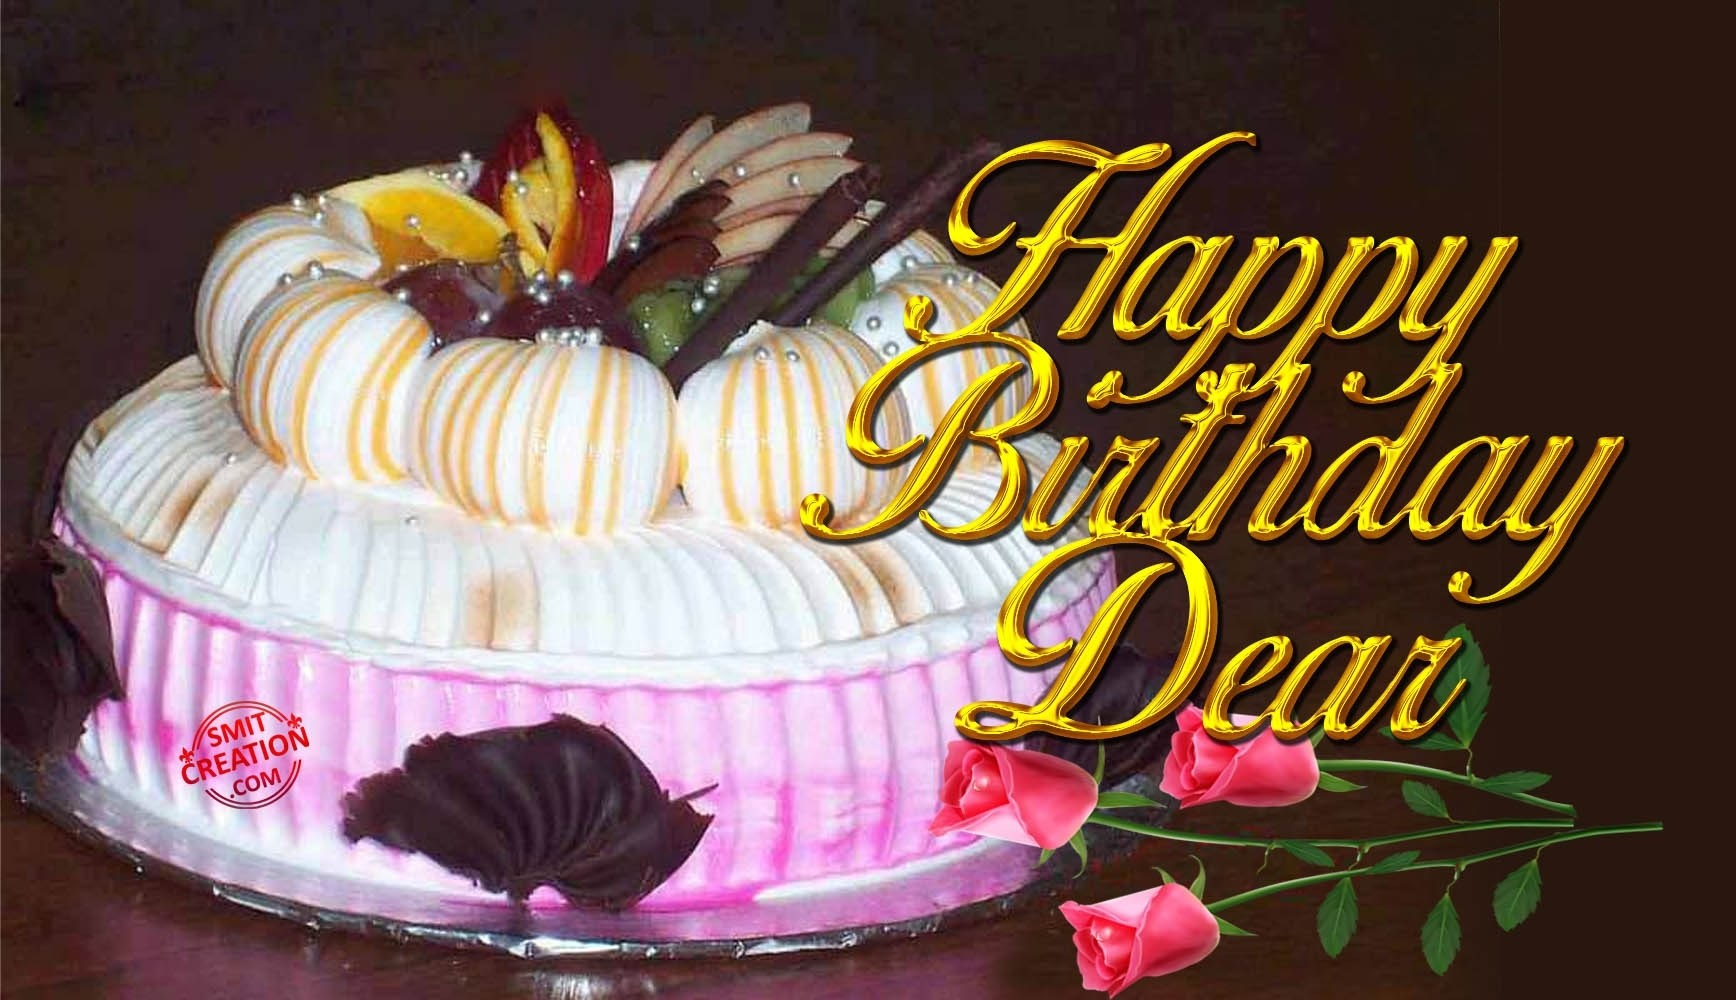 HAPPY BIRTHDAY DEAR - SmitCreation.com